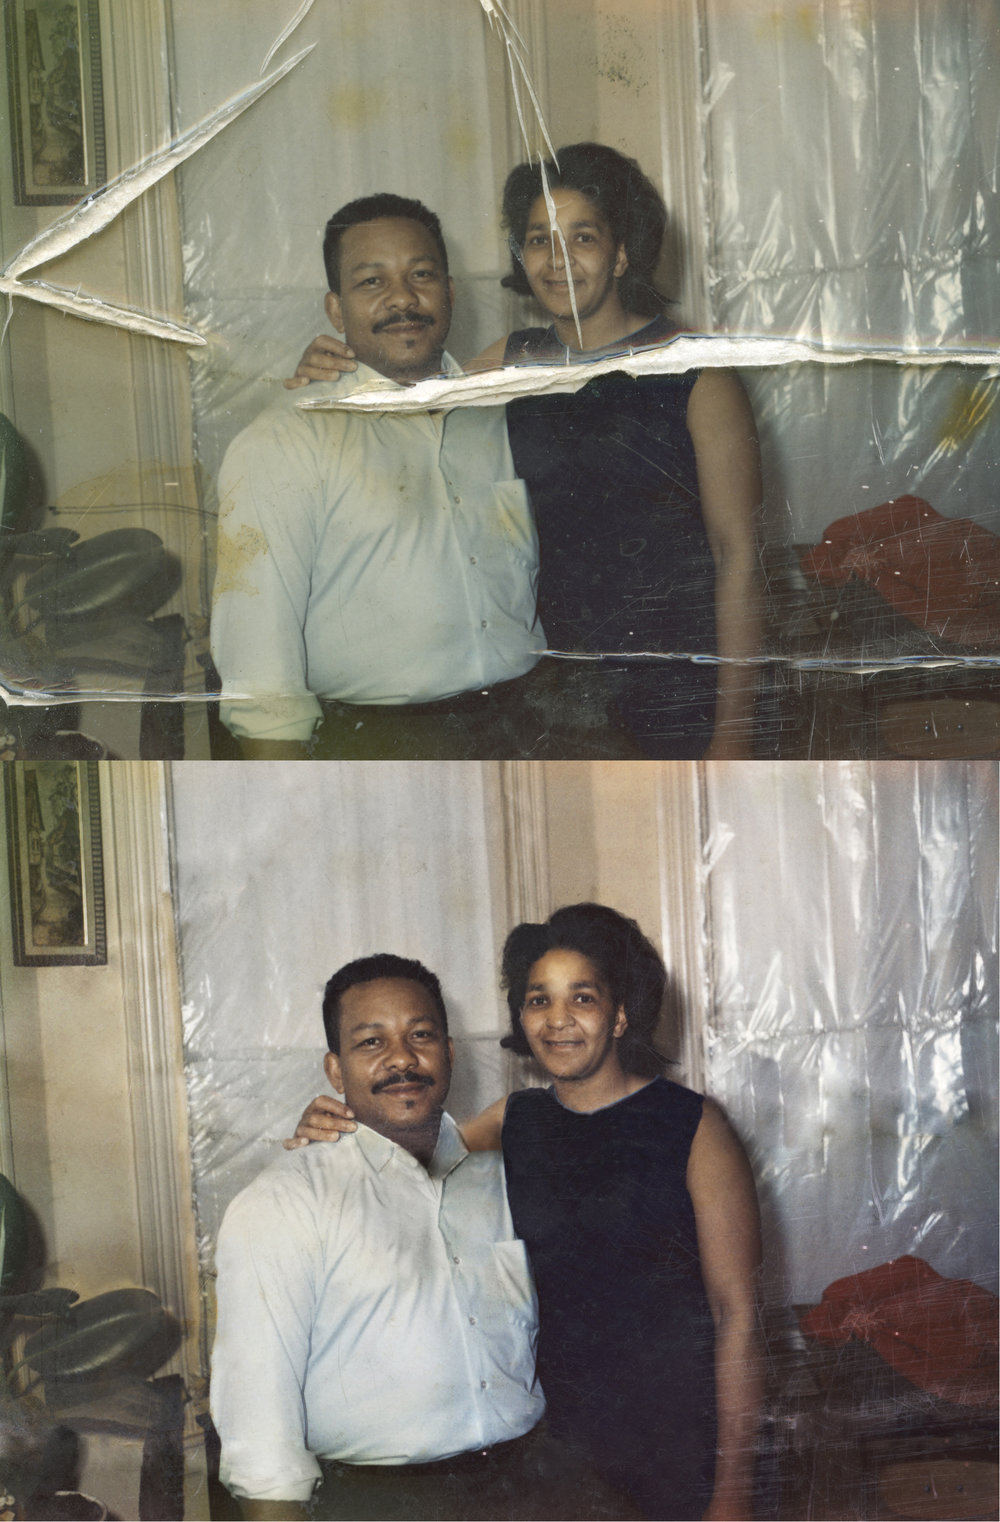 Johnson_Claude_couple_001_Before.jpg